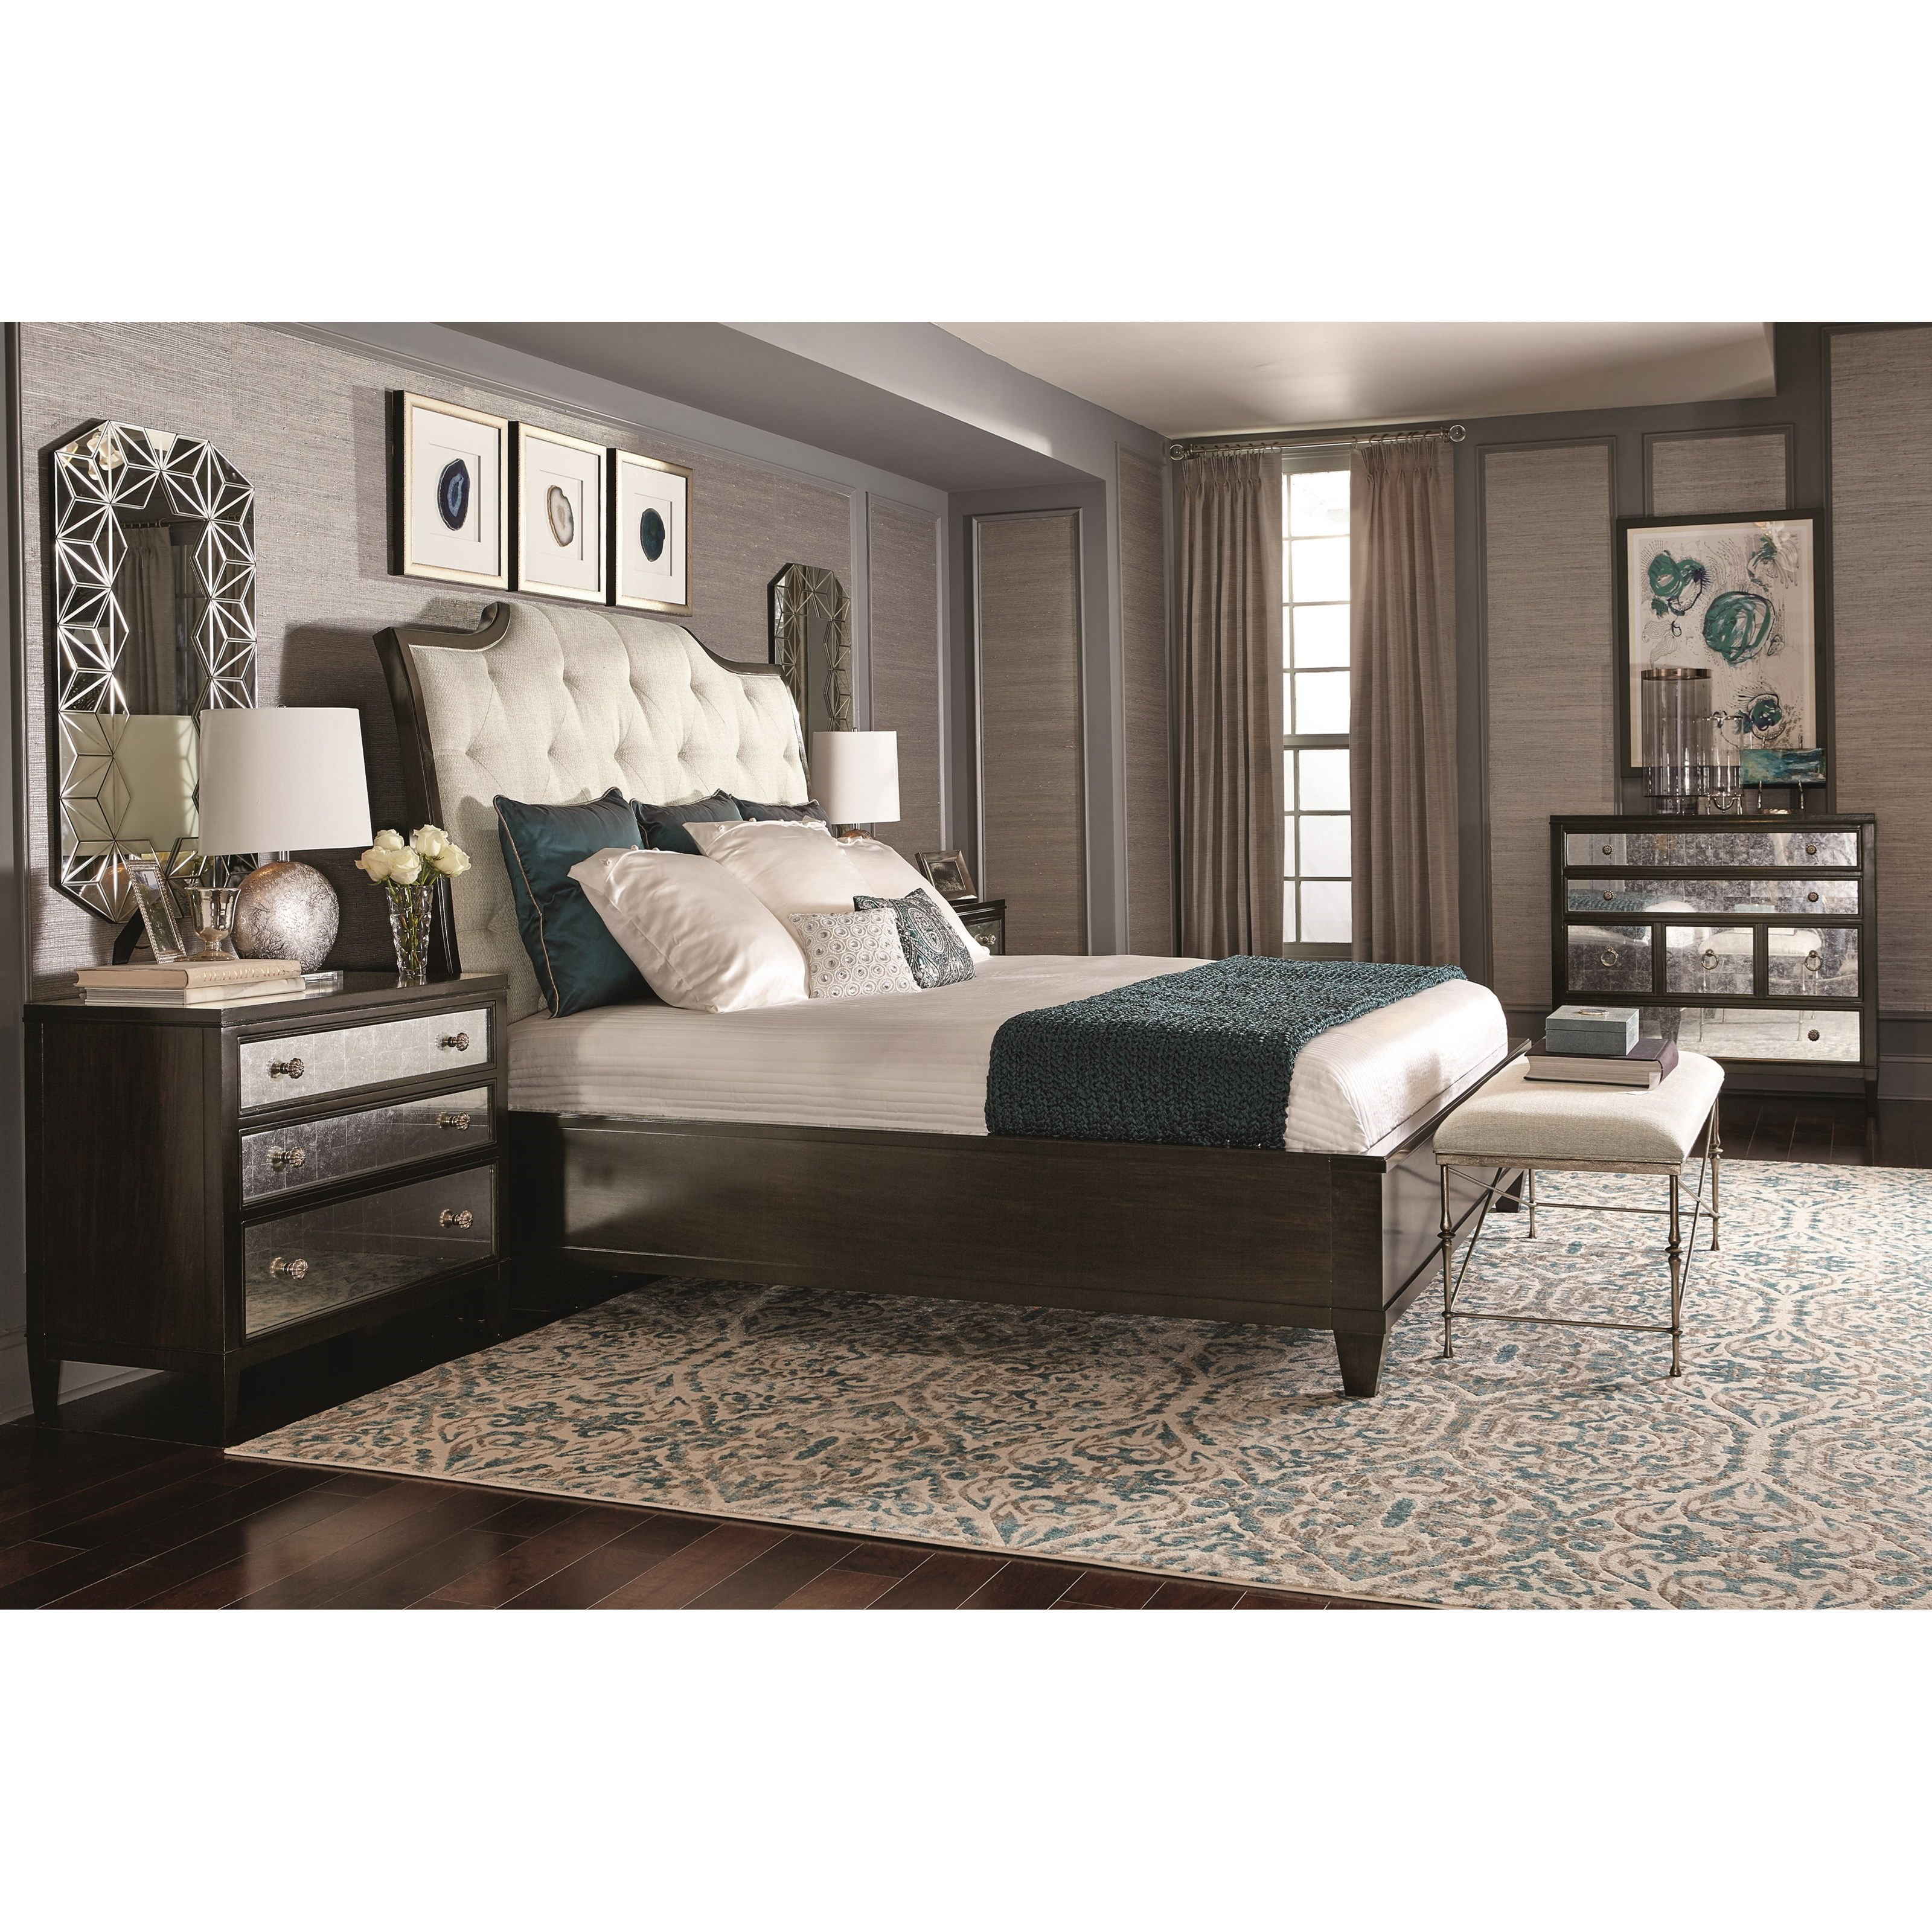 Bernhardt sutton house king bedroom group dunk bright - Bright house bedroom furniture ...